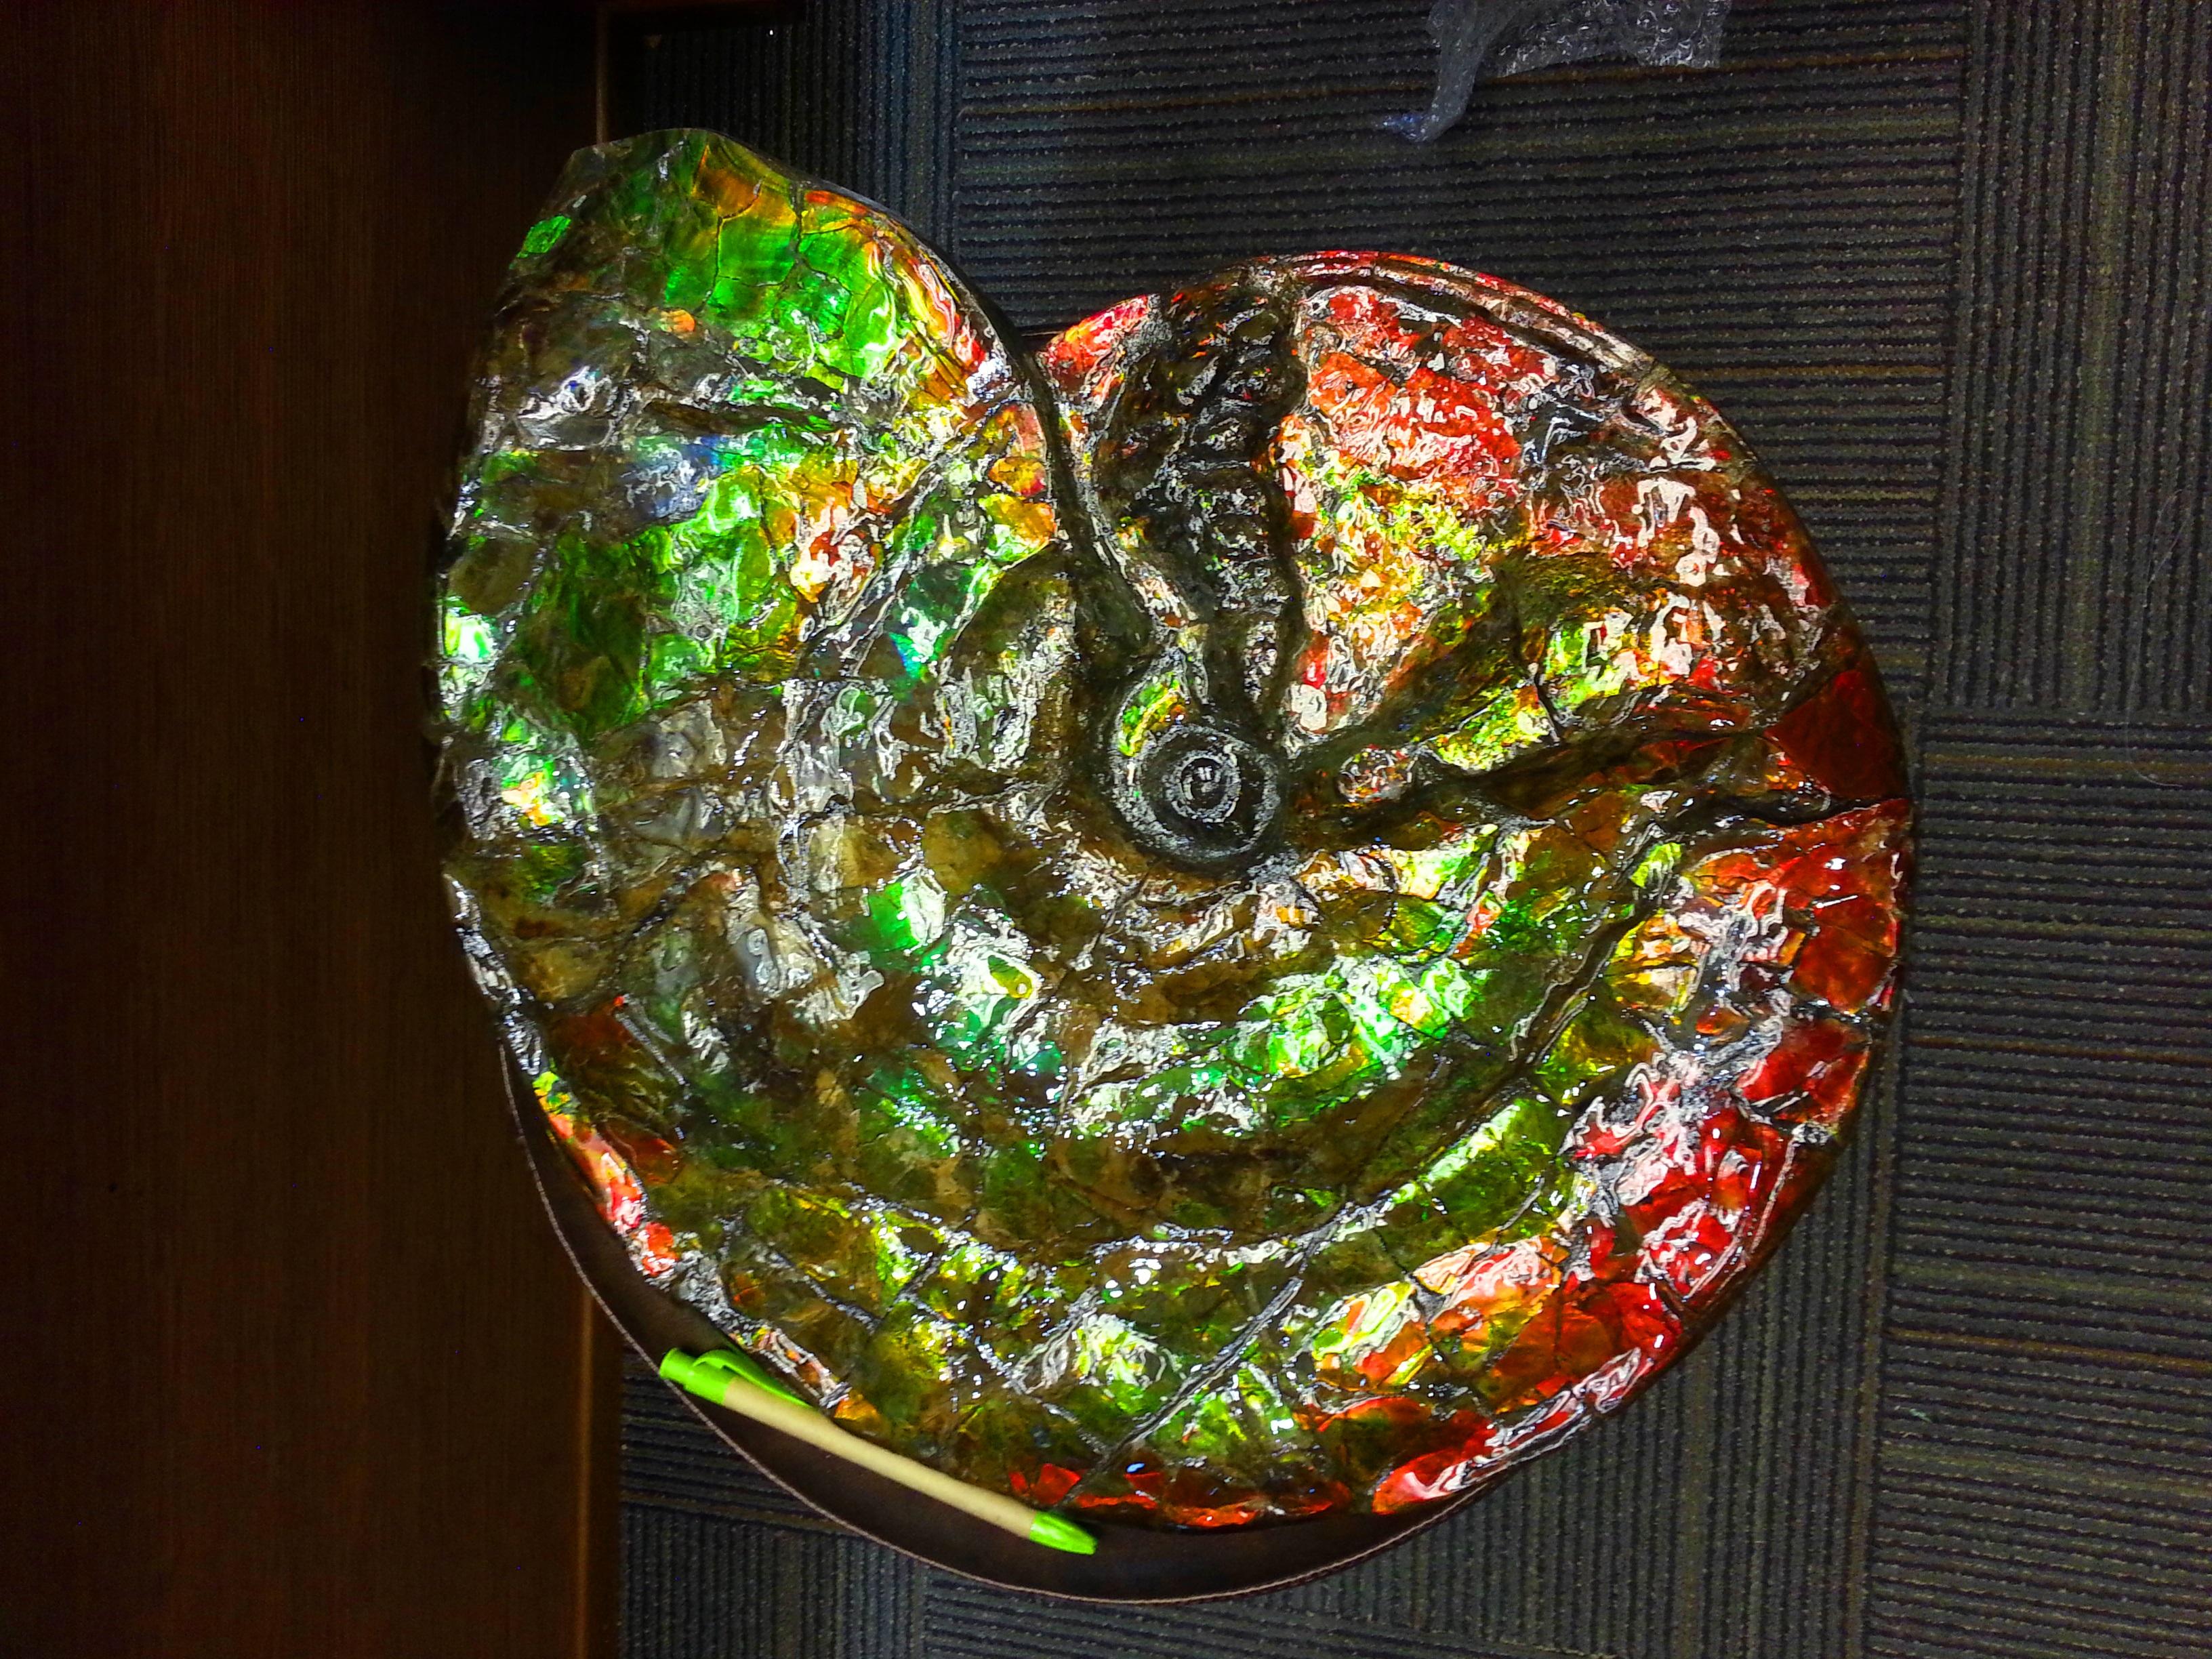 canadian ammonite in singapore crystals and gemstones